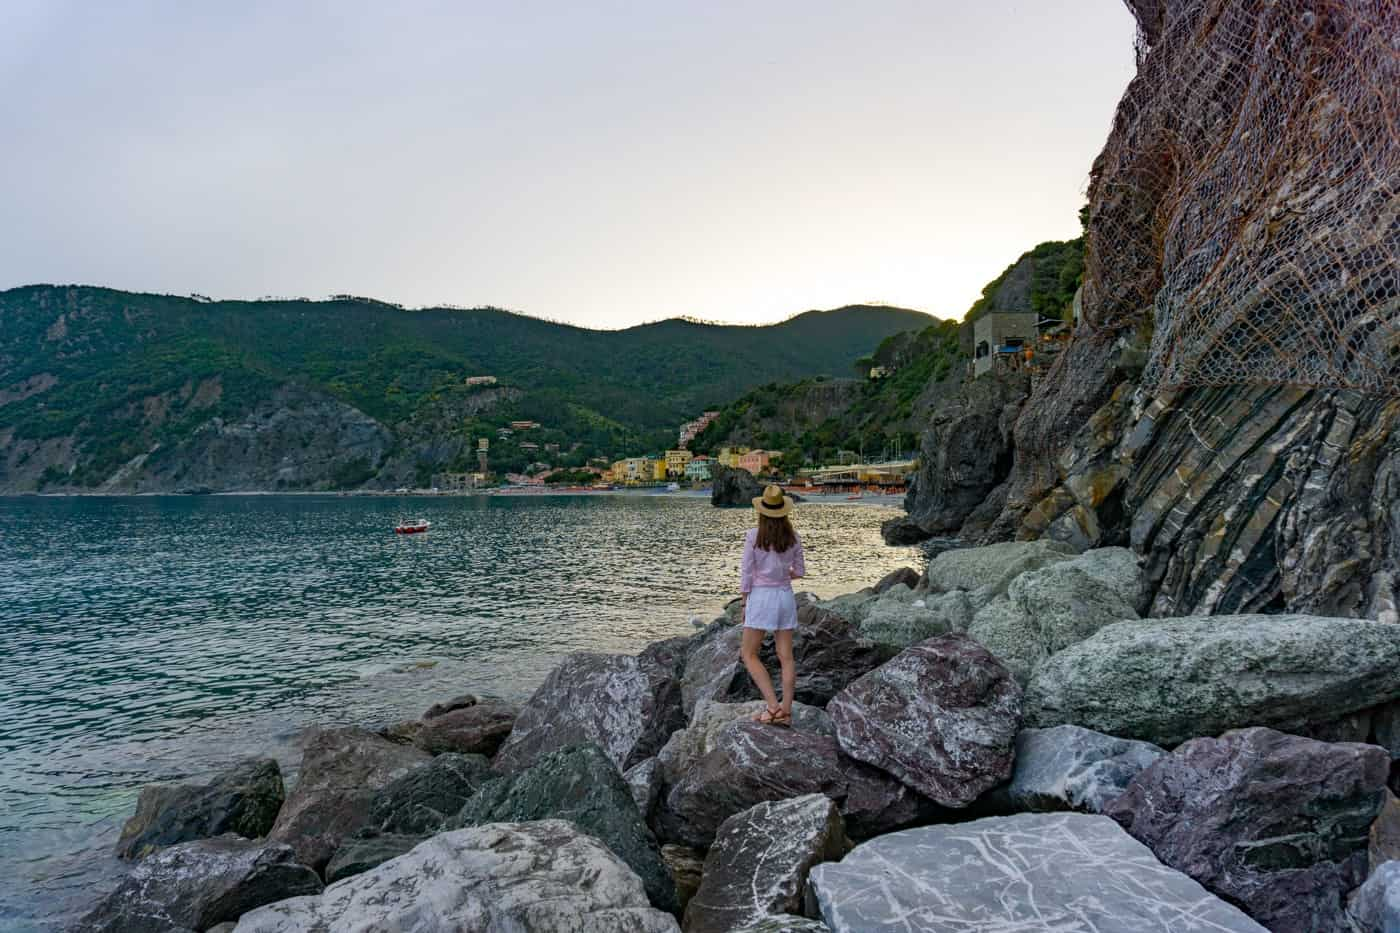 How to have the perfect day in Cinque Terre